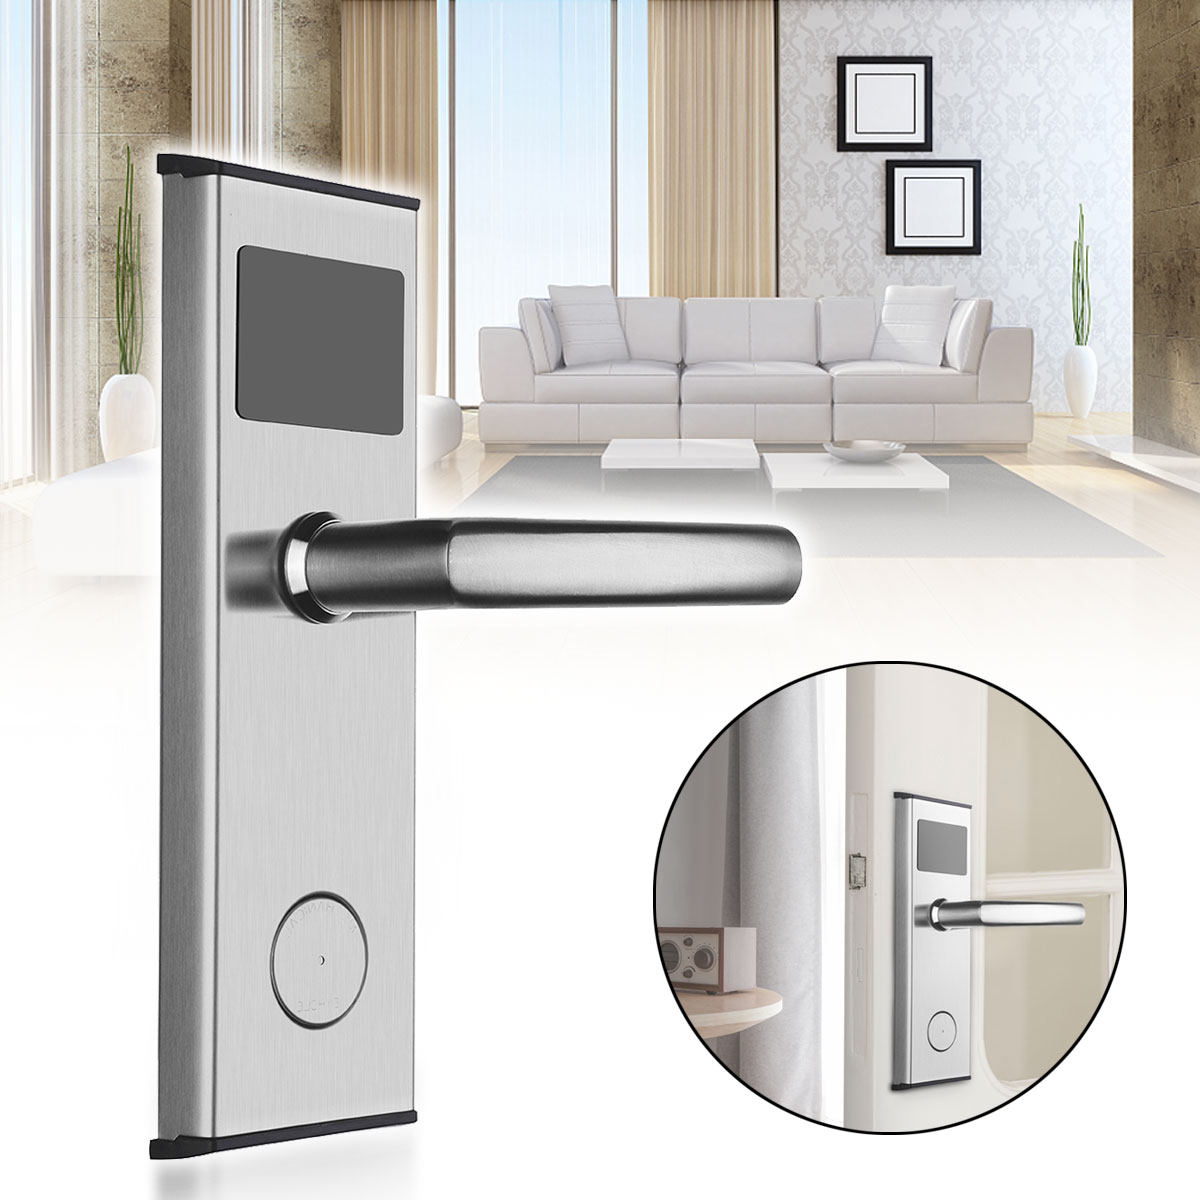 Safurance Digital Card Lock Security Stainless Steel Intelligent RFID Digital Card Key Unlock Hotel Door Lock System Door Locks